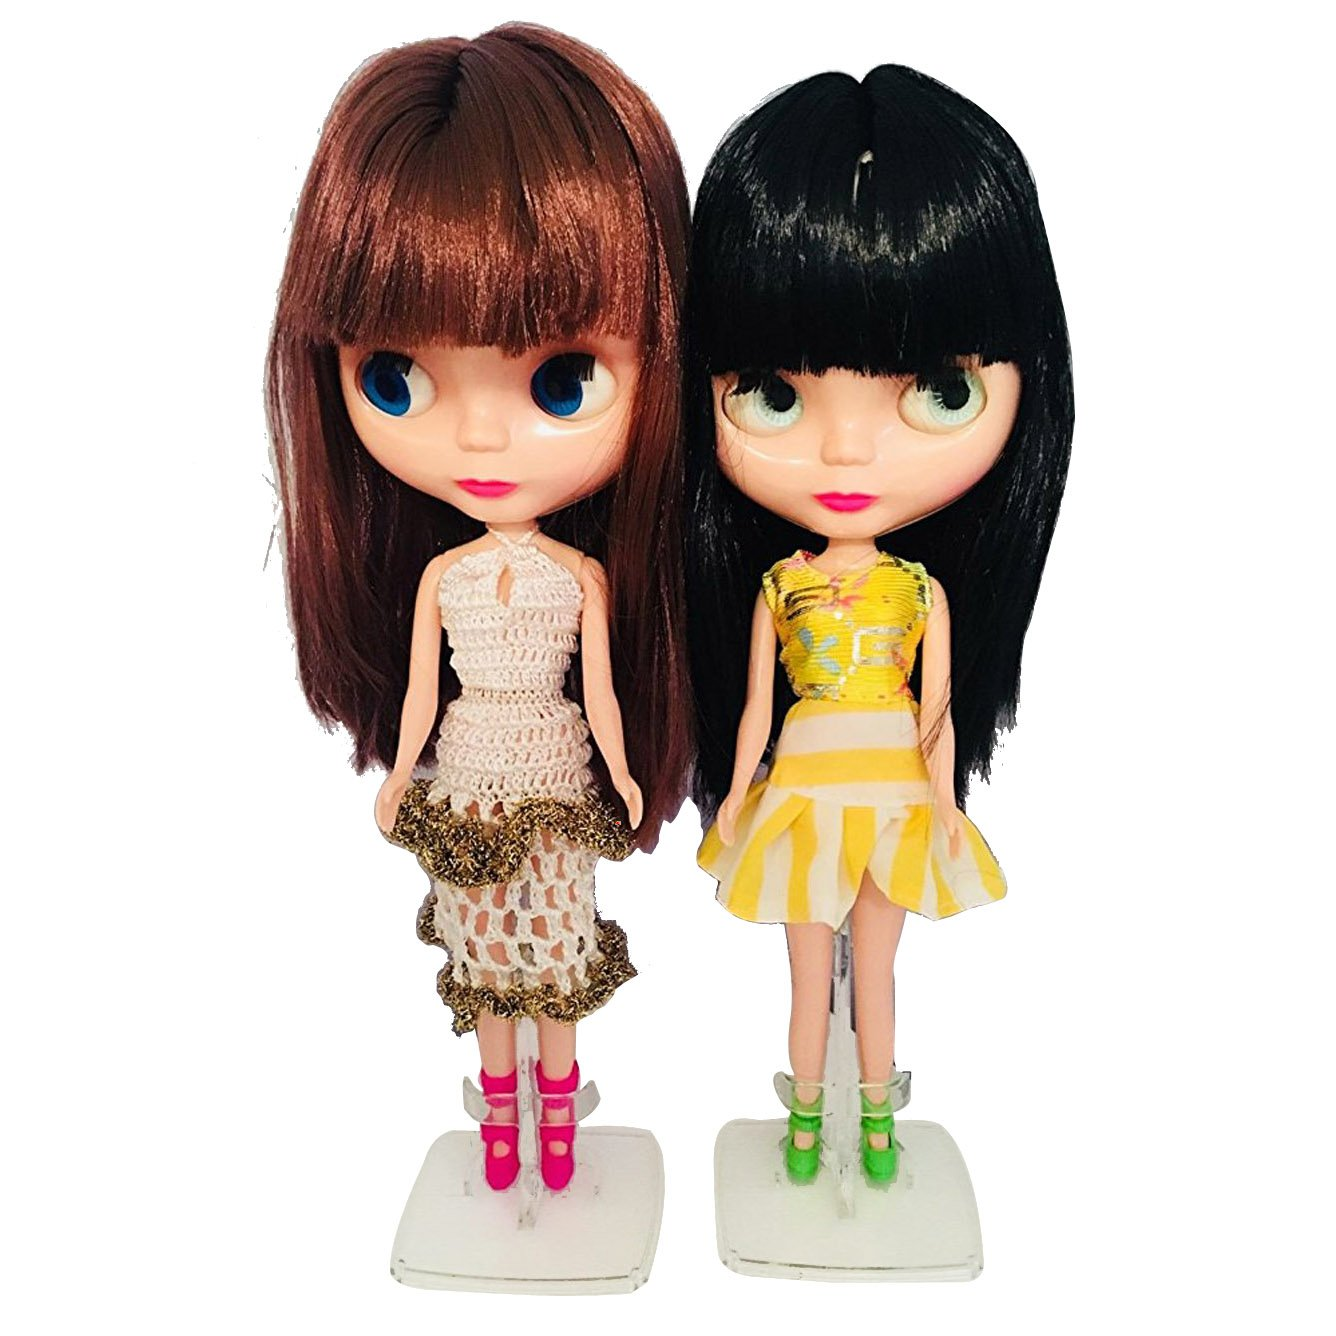 Amazon com big head dolls with hair12 inch anime dolls for girls4 eyes color changing as blyth style customize your doll clothing